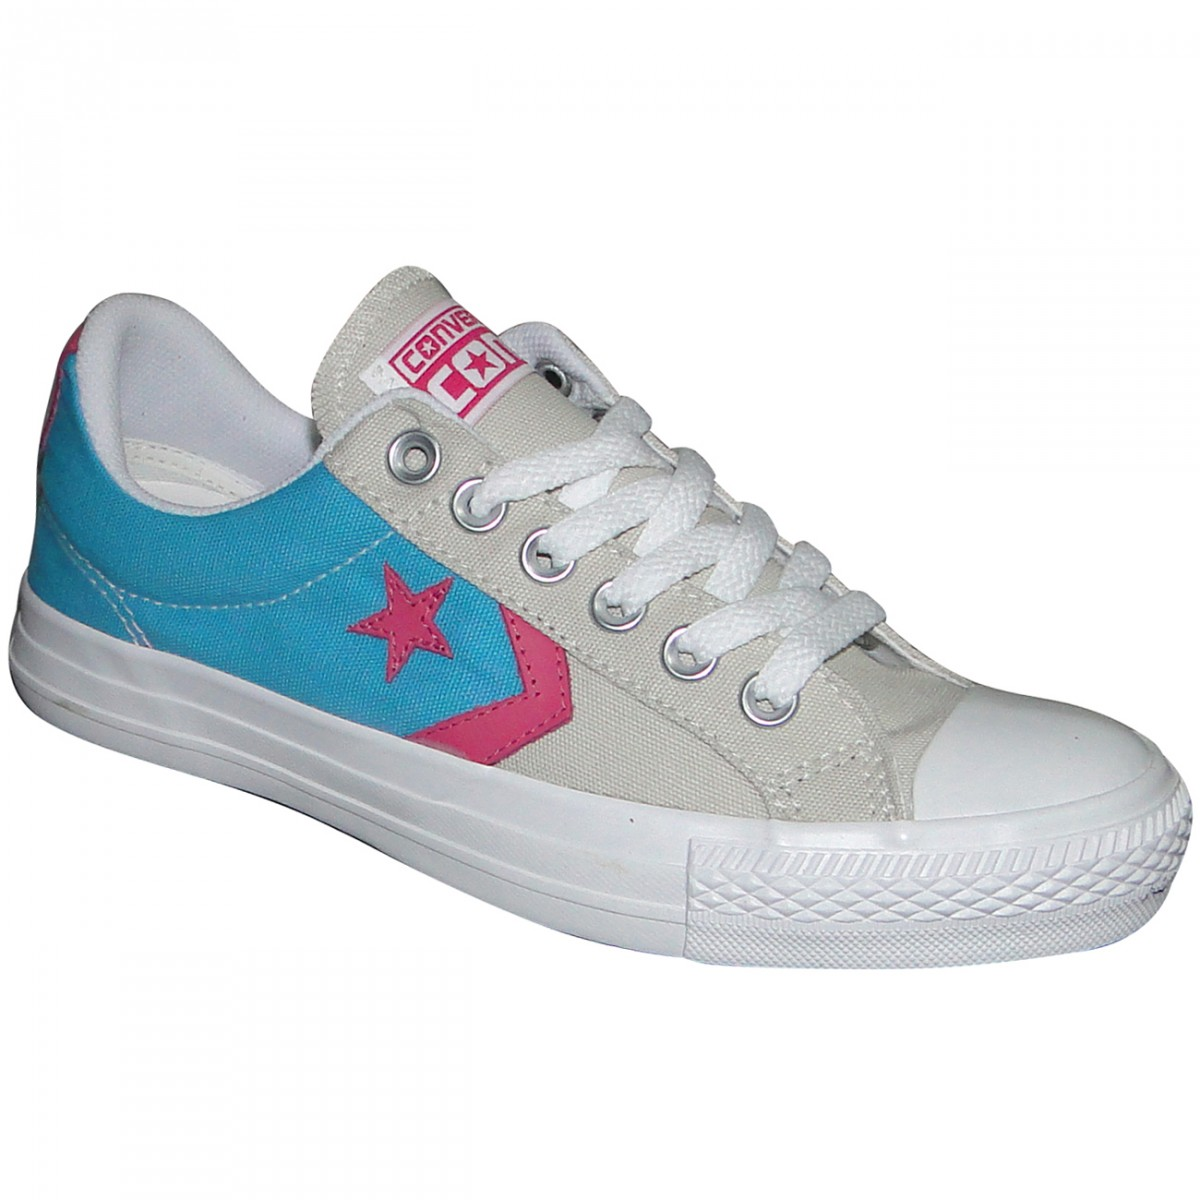 892f16f1499 Tenis All Star Converse Star Player CO261784 - Piscina Bege Pink - Chuteira  Nike